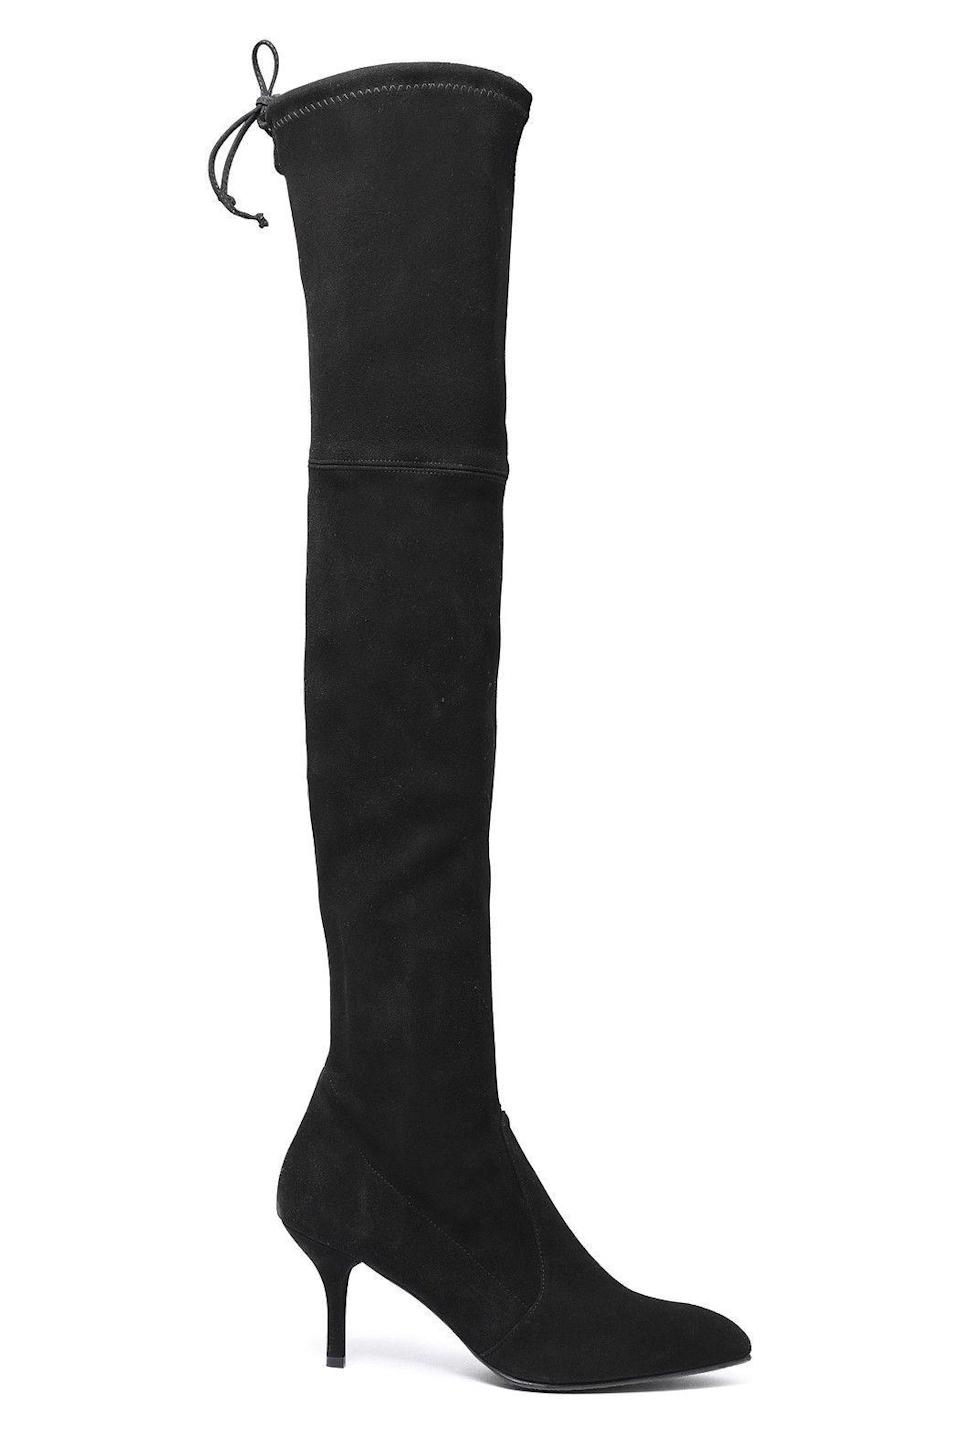 """<p><strong>STUART WEITZMAN</strong></p><p>theoutnet.com</p><p><strong>$399.00</strong></p><p><a href=""""https://go.redirectingat.com?id=74968X1596630&url=https%3A%2F%2Fwww.theoutnet.com%2Fen-us%2Fshop%2Fproduct%2Fstuart-weitzman%2Fboots%2Fmid-heel-boots%2Fbow-detailed-suede-over-the-knee-boots%2F2243576767547969&sref=https%3A%2F%2Fwww.harpersbazaar.com%2Ffashion%2Ftrends%2Fg34788766%2Fthe-outnets-black-friday-sale-2020%2F"""" rel=""""nofollow noopener"""" target=""""_blank"""" data-ylk=""""slk:Shop Now"""" class=""""link rapid-noclick-resp"""">Shop Now</a></p><p>It's OTK season, people, and no one does them better than Stuart Weitzman.</p>"""